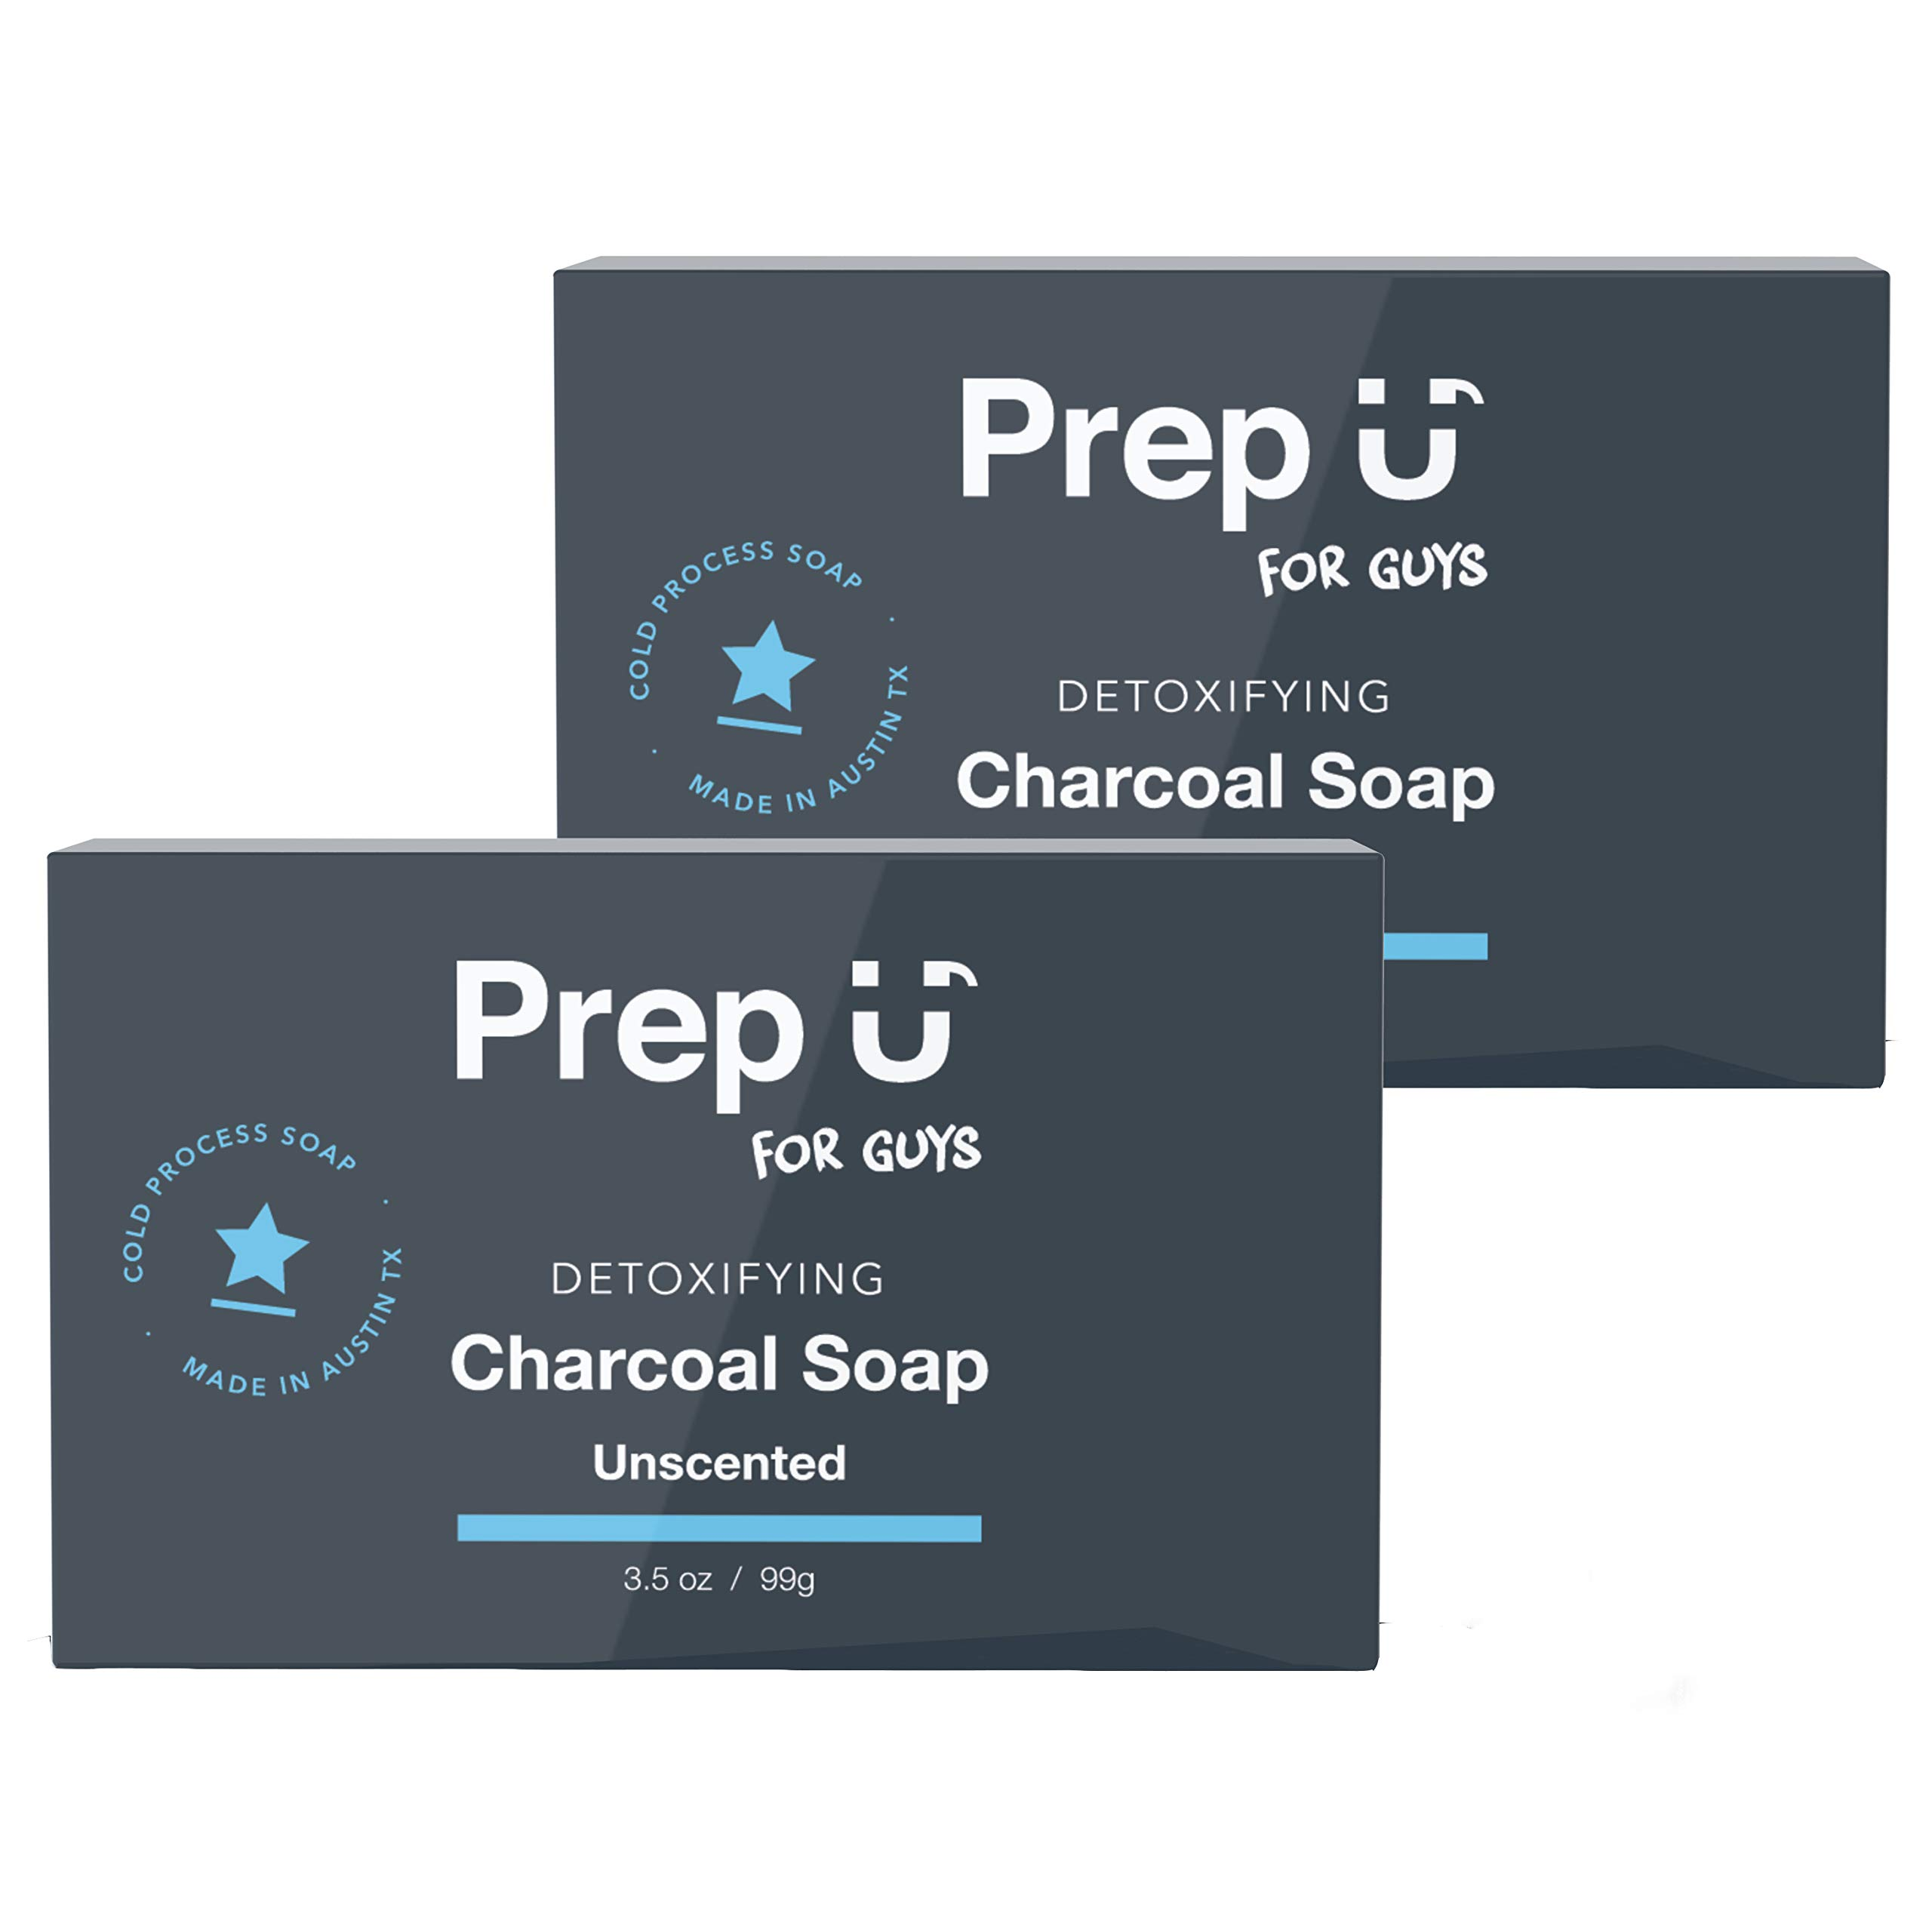 Prep U | Detoxifying Activated Charcoal Soap for Boys, Teens, Men (2-Pk) | Naturally Absorb Impurities and Toxins, Control Oily Skin | Daily Face & Body Cleanse w/Bentonite Clay | Unscented- 3.5 oz